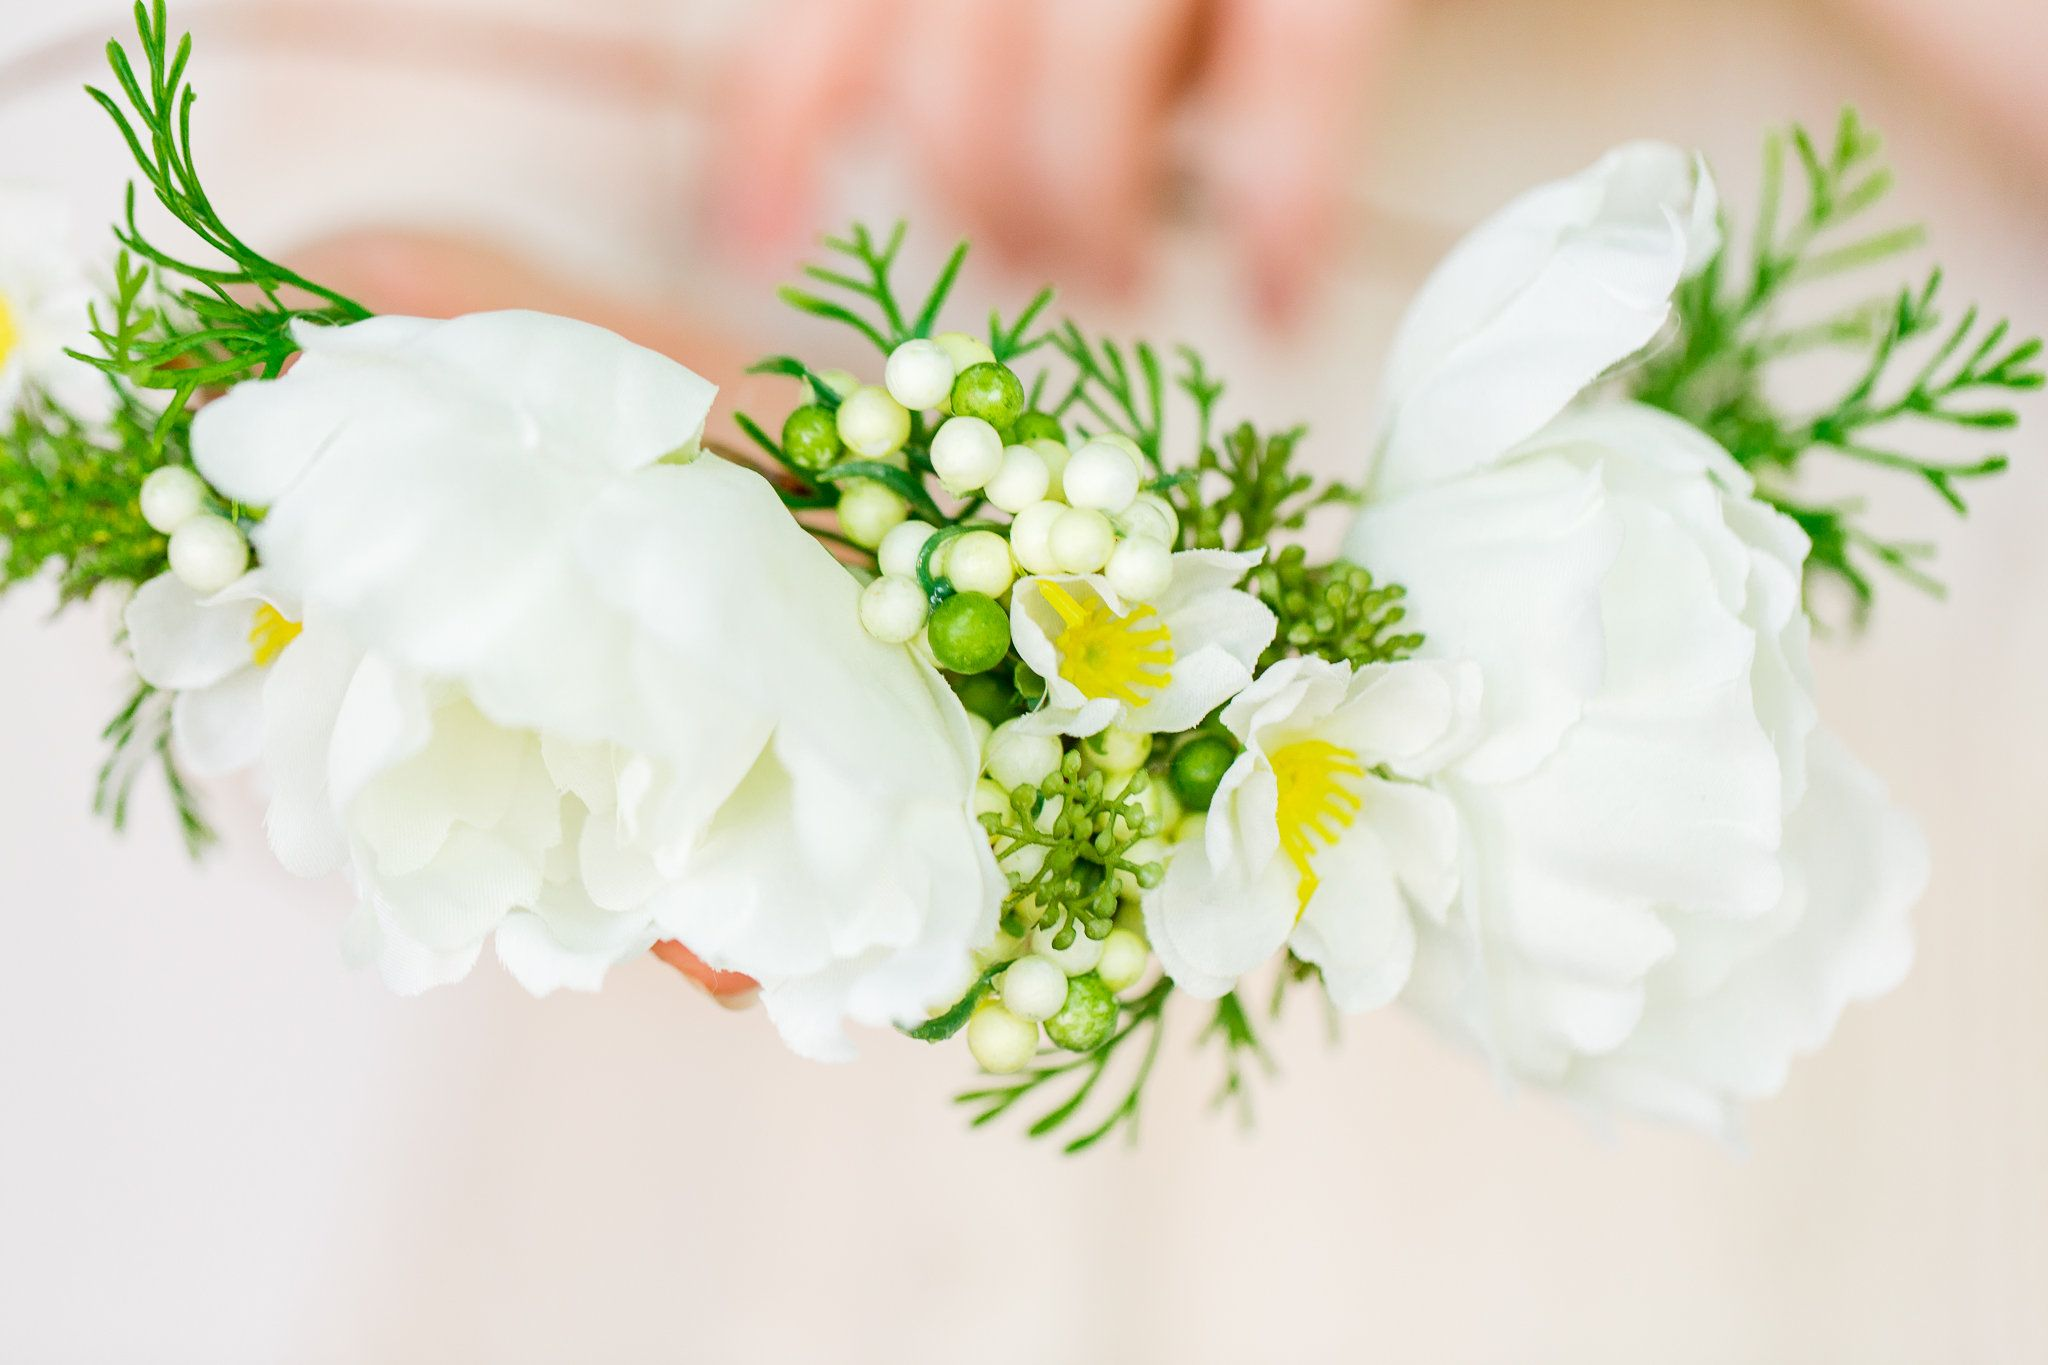 Two Large White Flower With Yellow And White Berries Bridal Flower